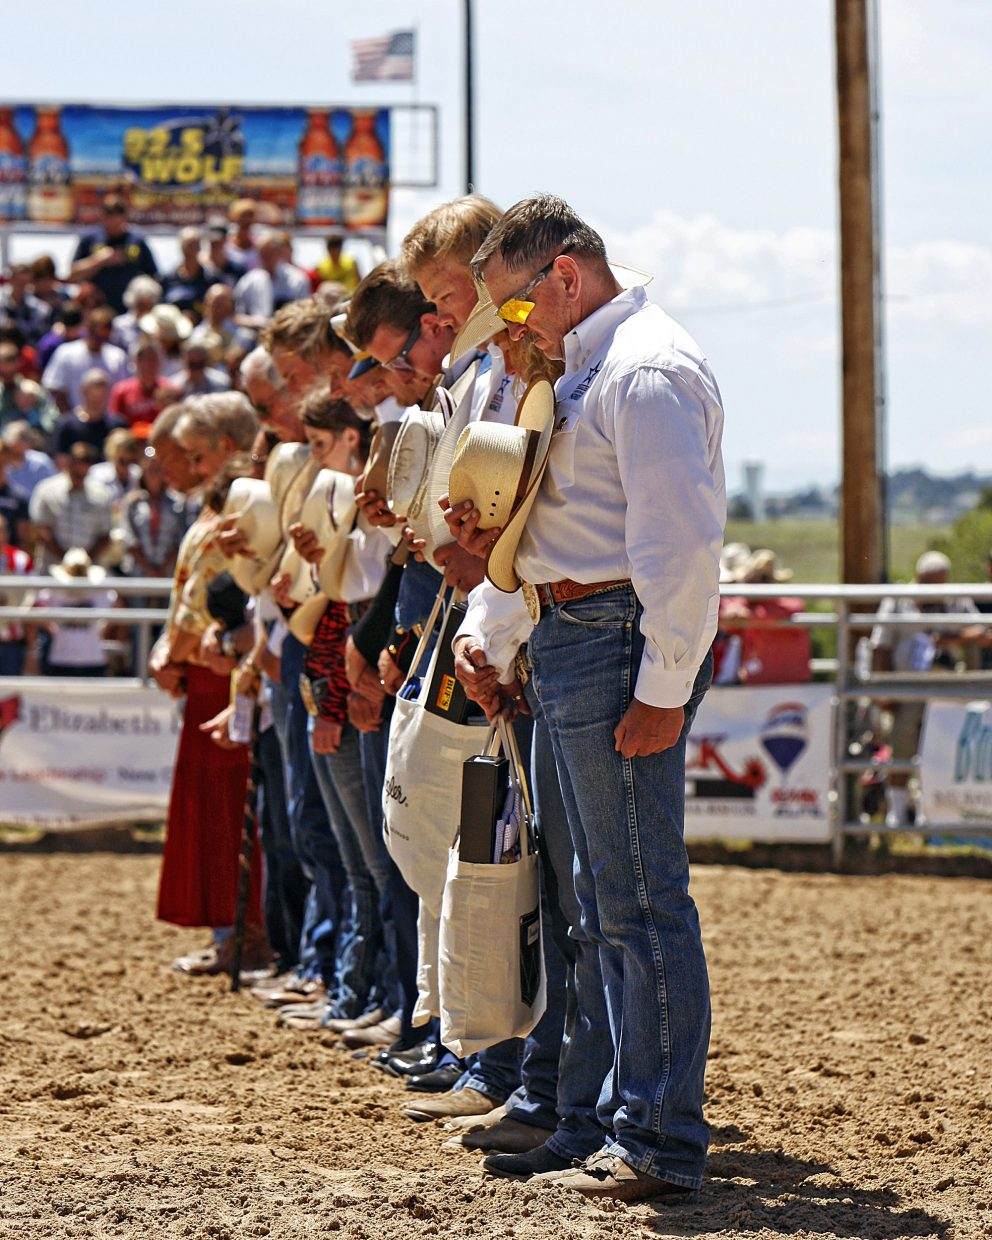 The Elizabeth Stampede's Red, White & Blue Rodeo Coordinator, Frank Harman (right), bows his head in prayer along with the veterans being honored inside the arena before the start of the performance that honored the military on June 4.